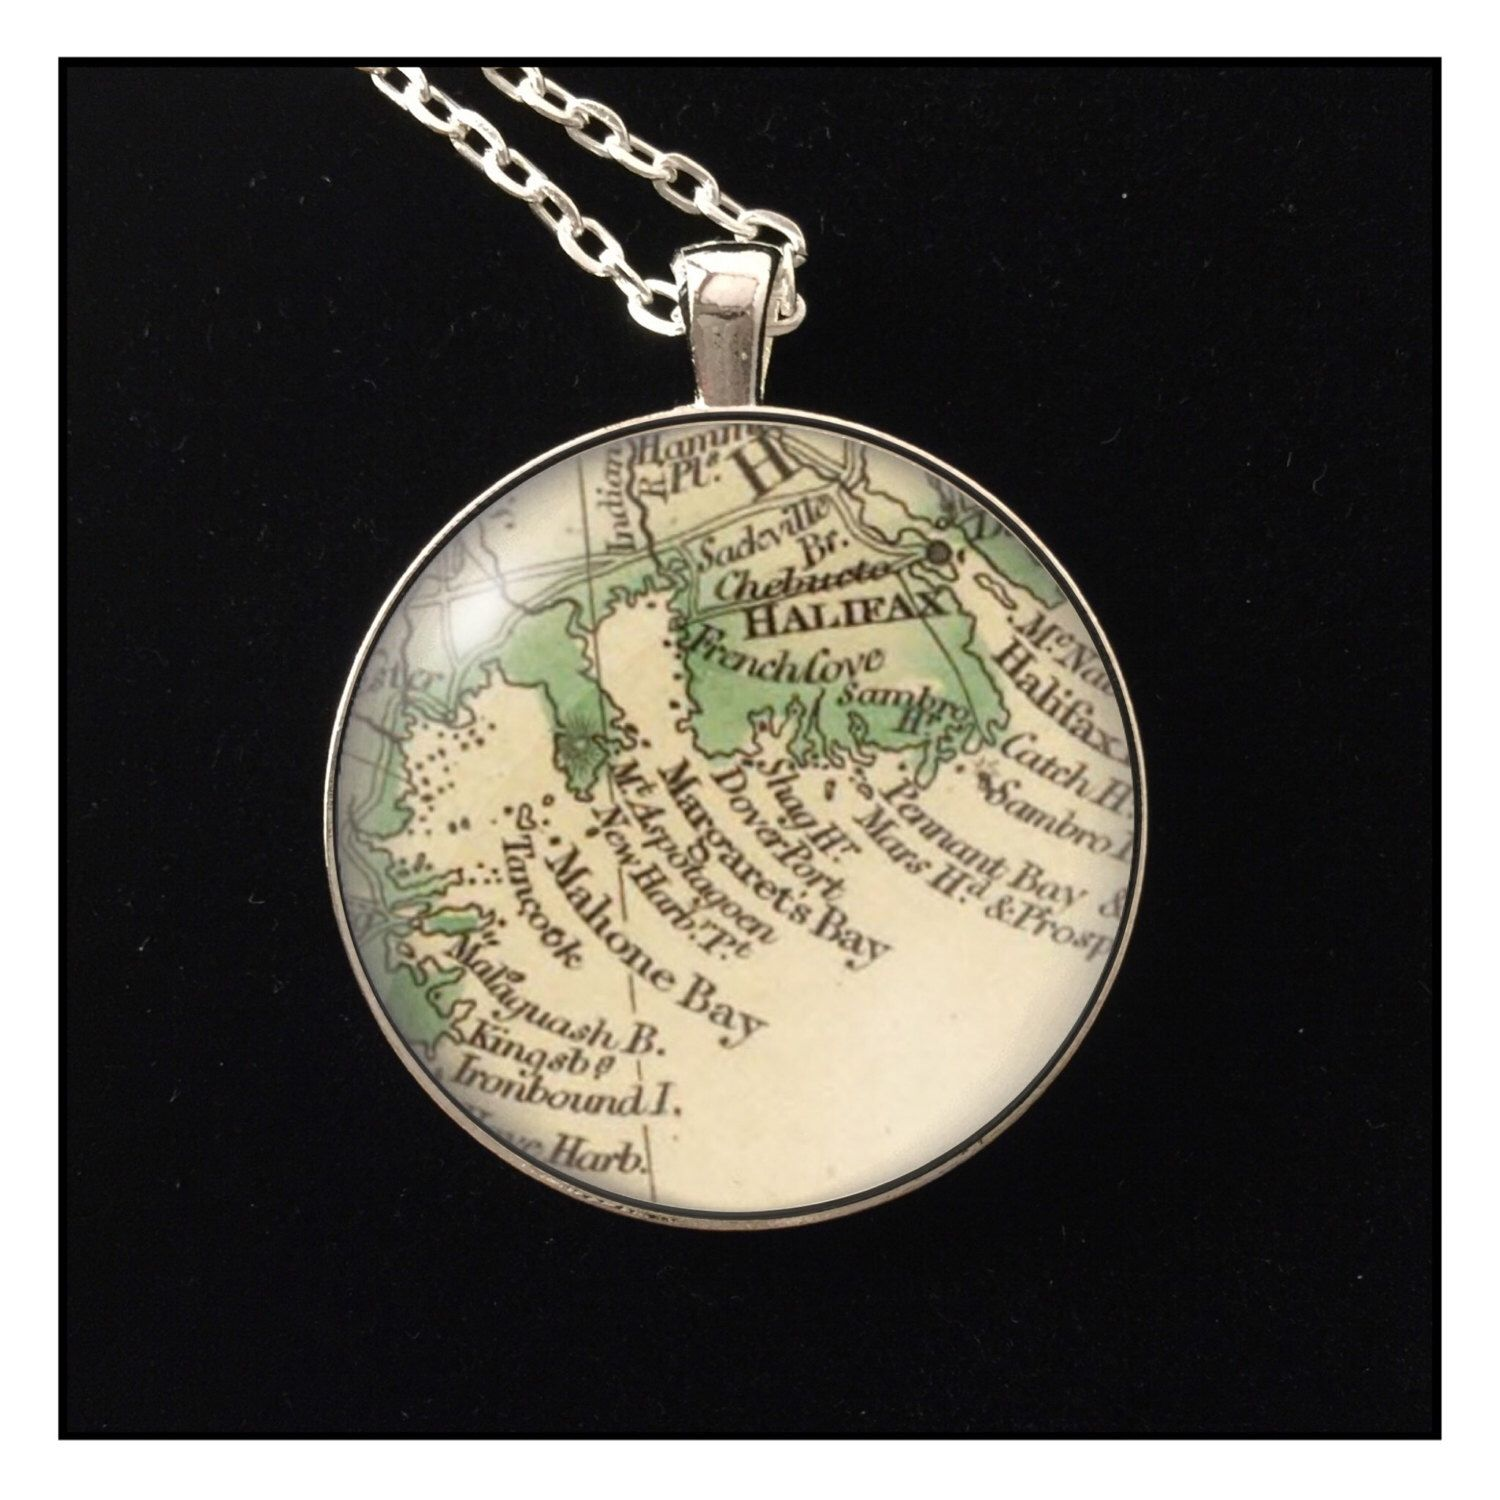 A personal favorite from my etsy shop httpsetsylisting items similar to oak island nova scotia halifax mahone bay antique map photo pendant necklace handmade gift on etsy gumiabroncs Gallery